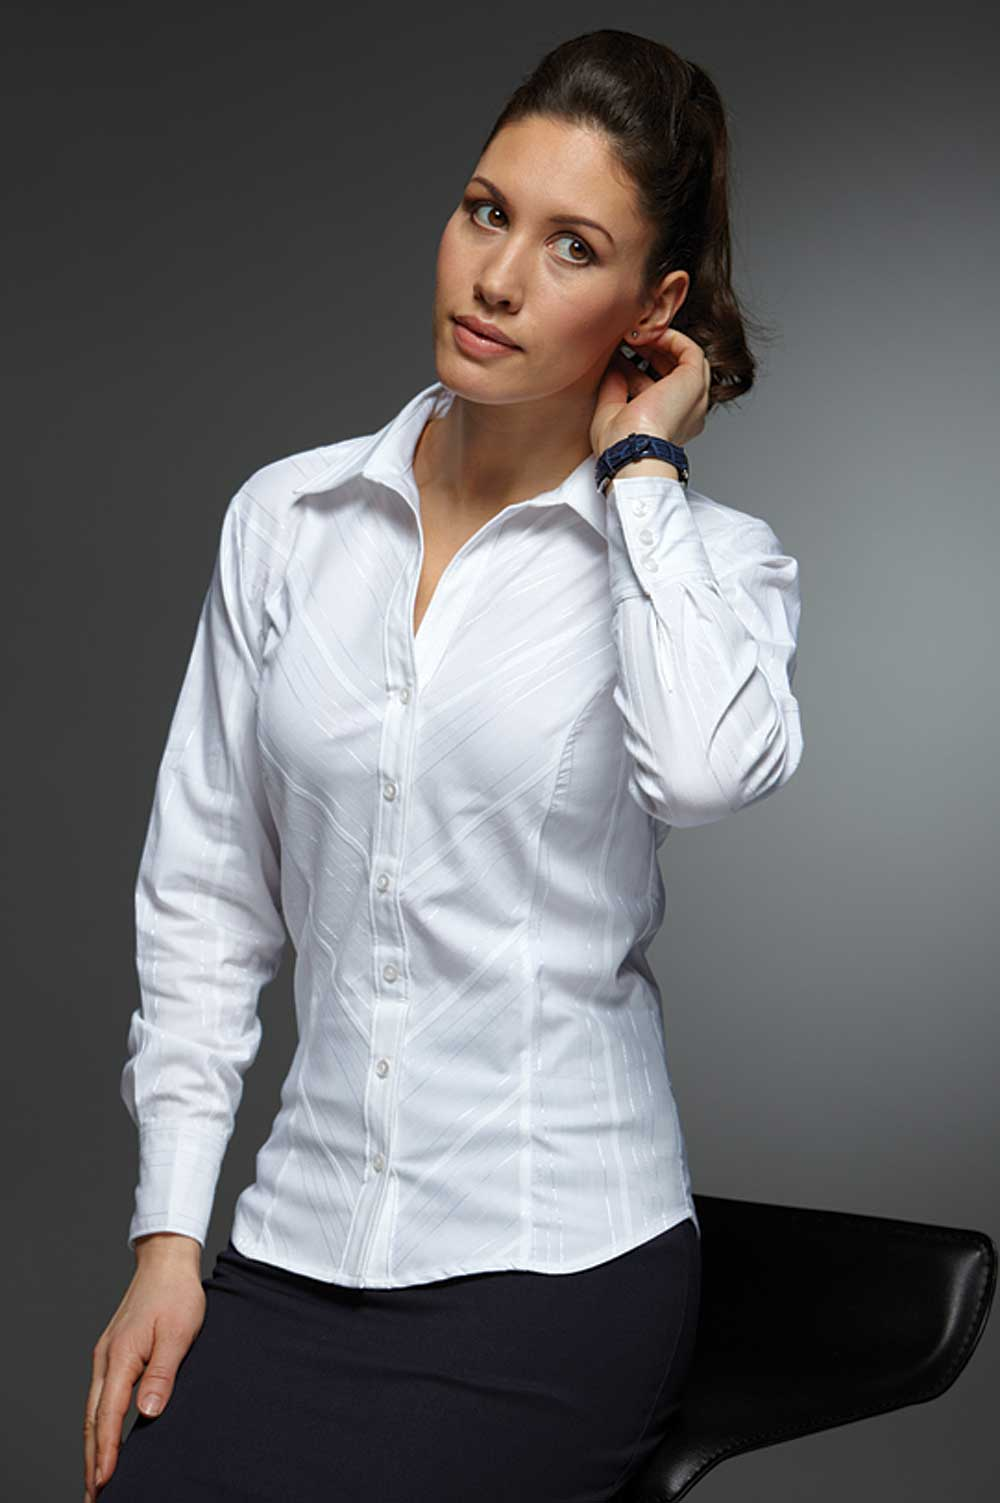 Women's White Blouses. Showing 40 of 45 results that match your query. Search Product Result. Product - Women Loose Top Lace Shirt and Blouse White. Product Image. Price $ Product Title. Women Loose Top Lace Shirt and Blouse White. Add To Cart. There is a .